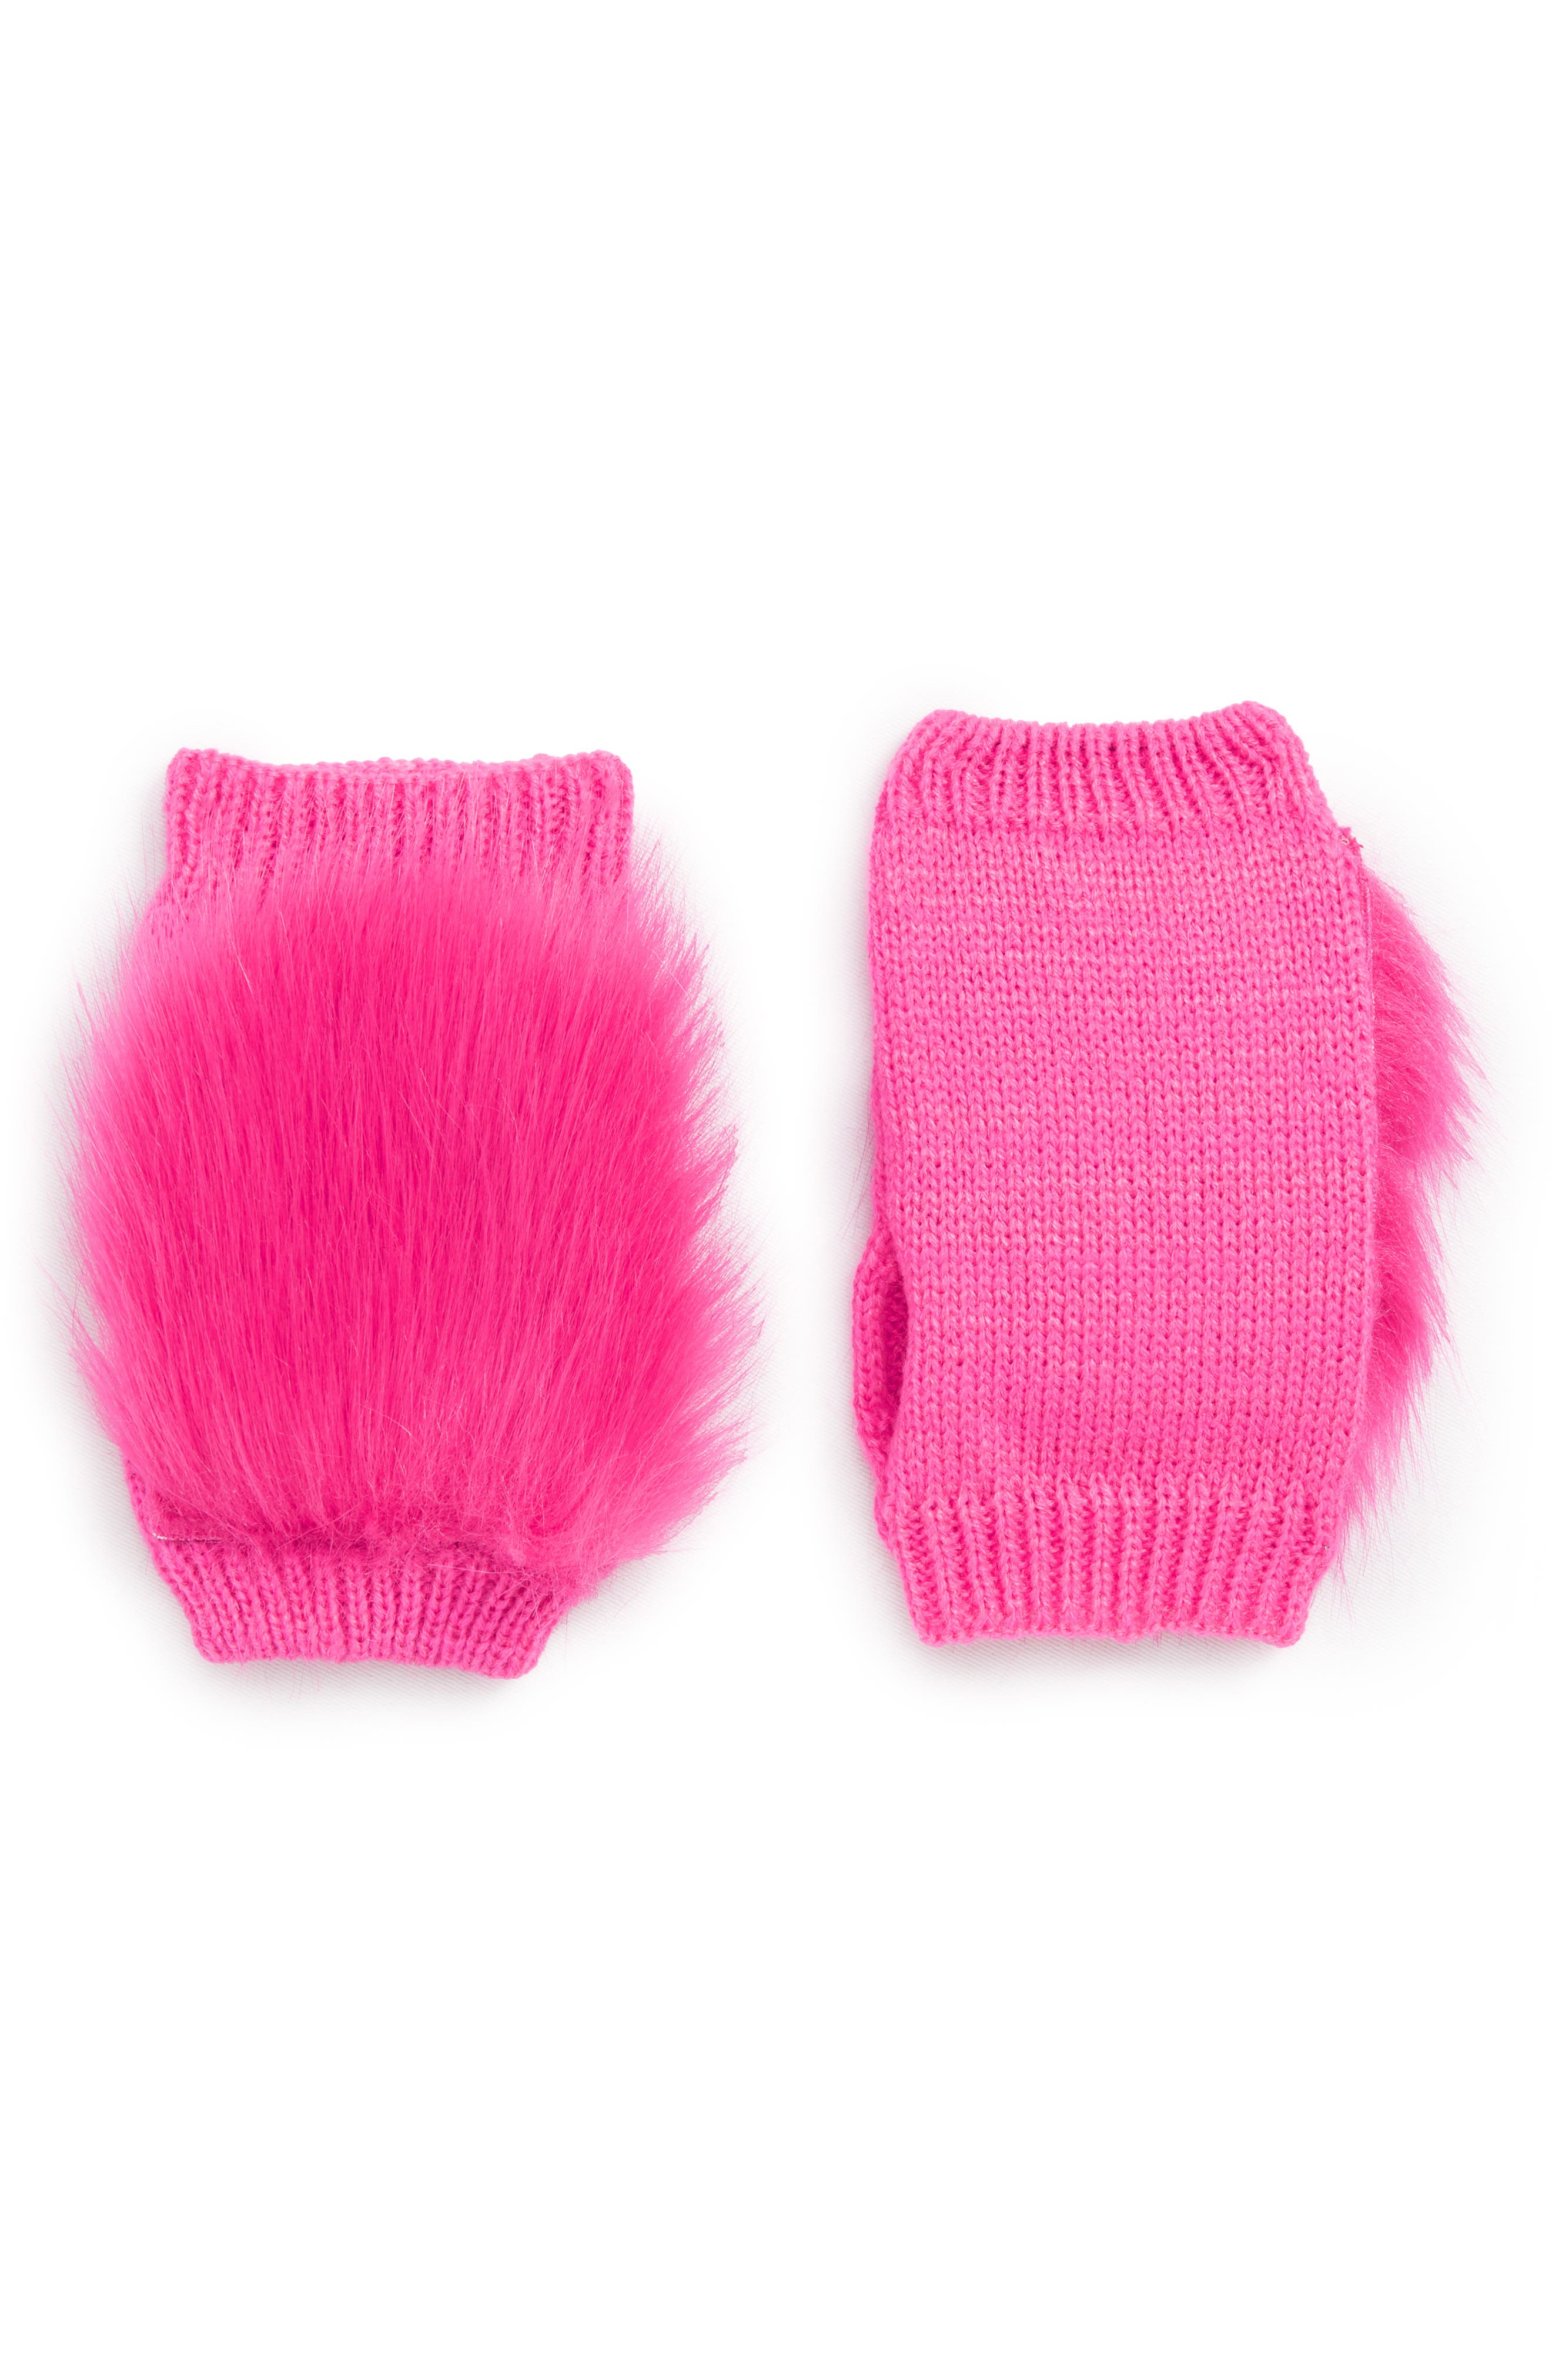 Faux Fur Hand Warmers,                             Main thumbnail 1, color,                             PINK STORM